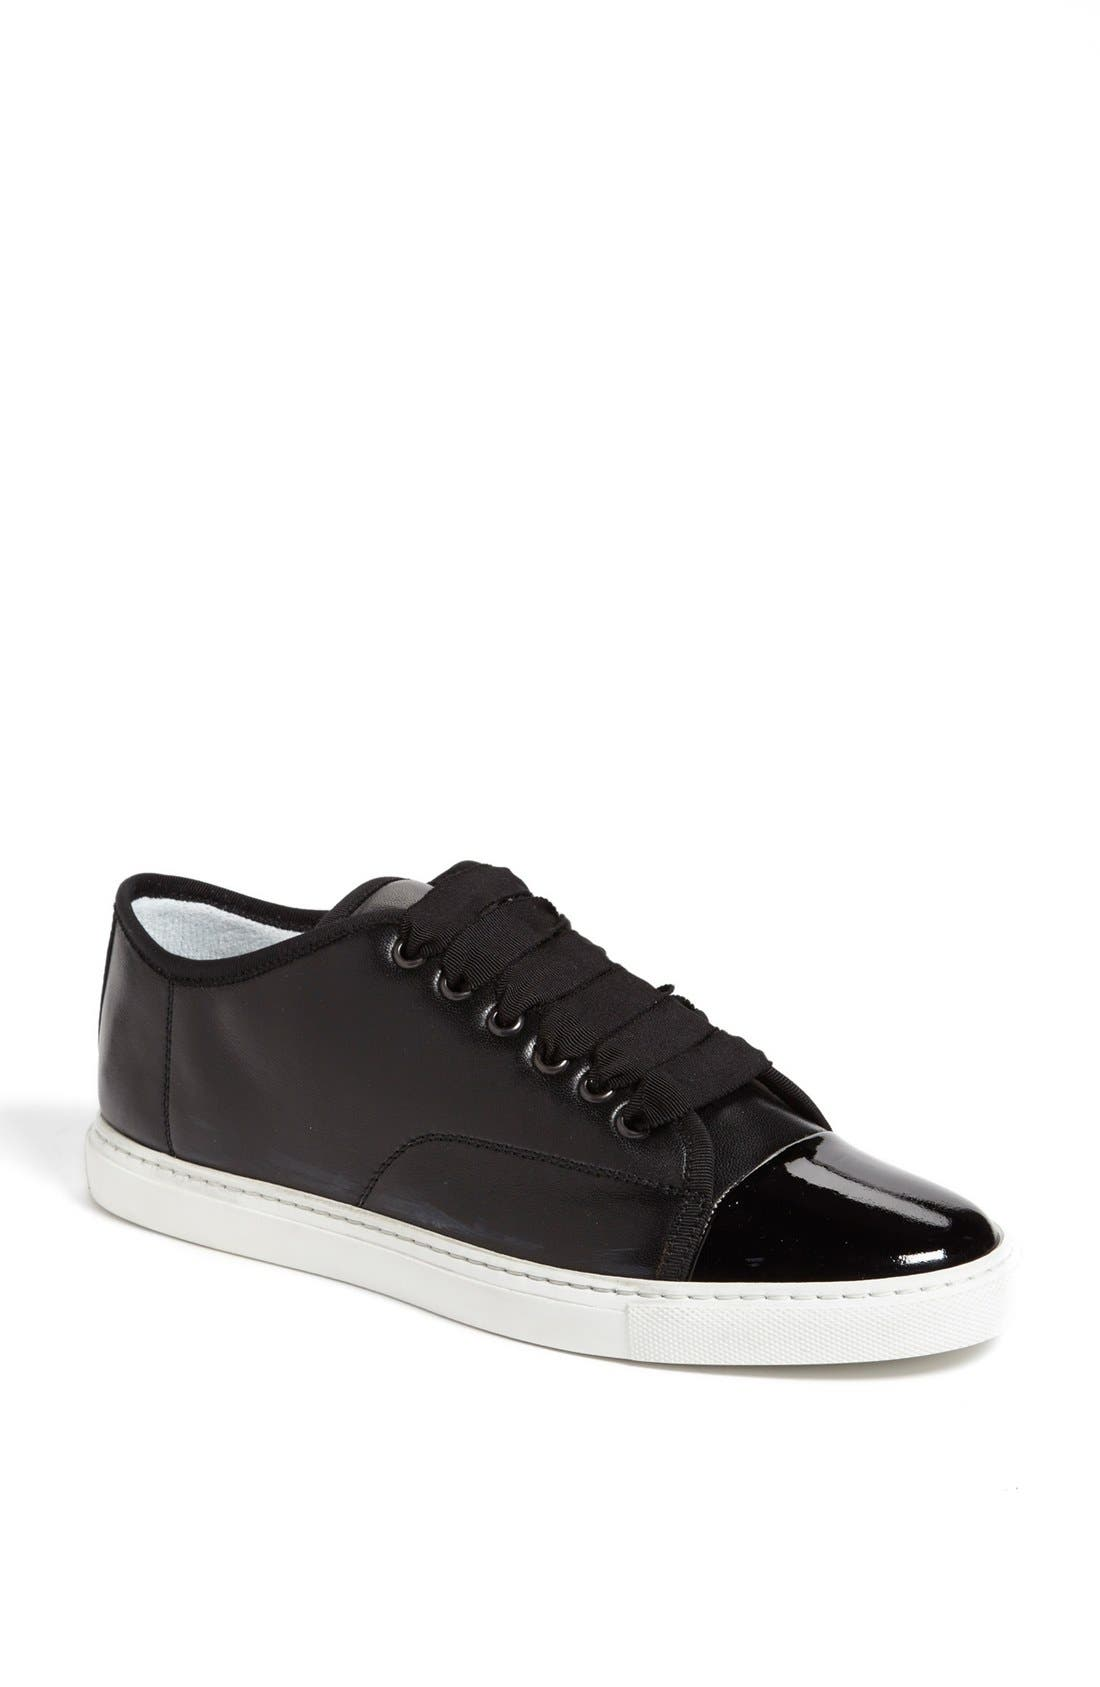 Main Image - Lanvin Leather Low Top Sneaker